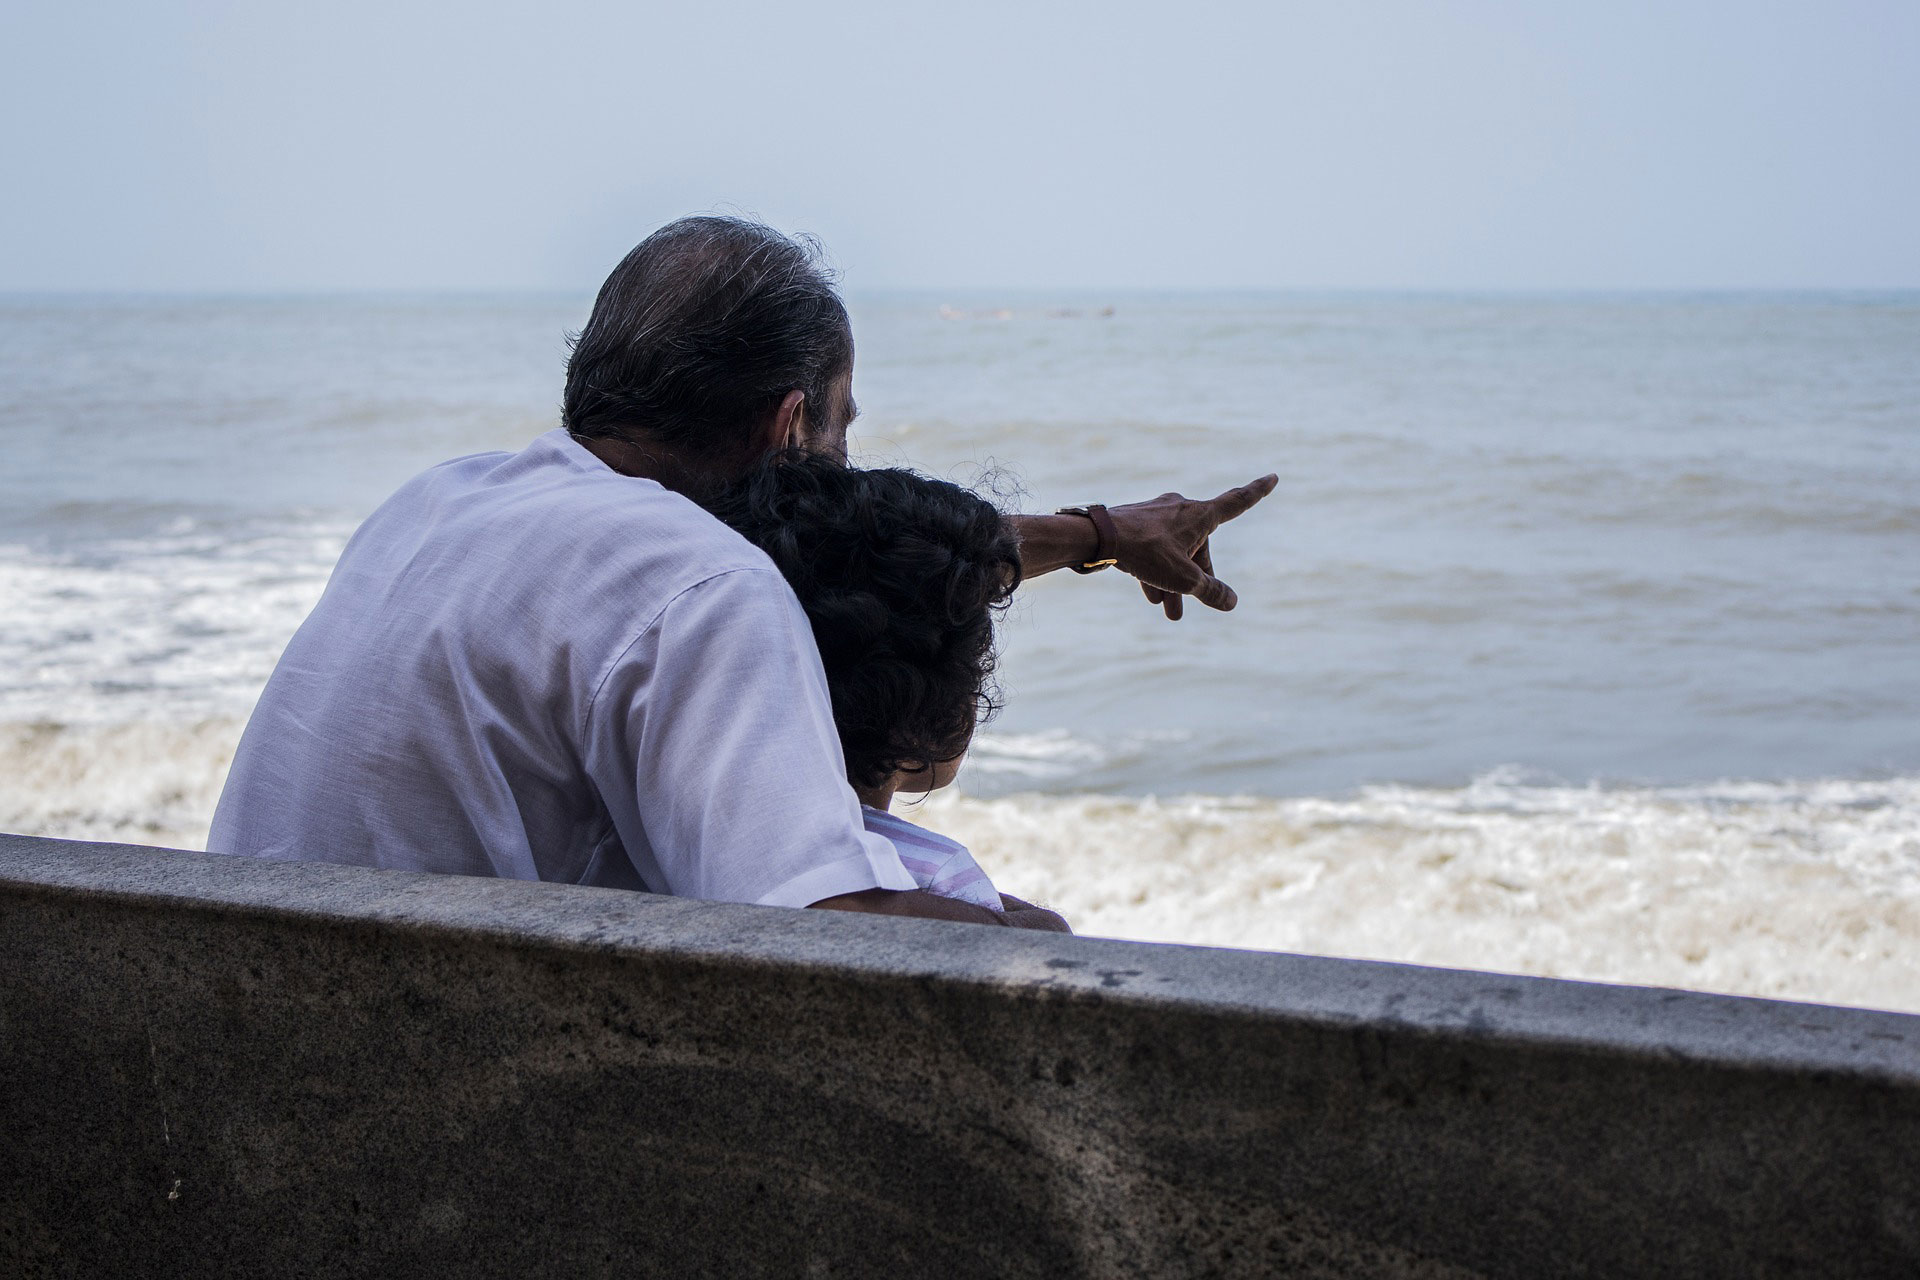 grandfather-and-child-at-beach.jpg